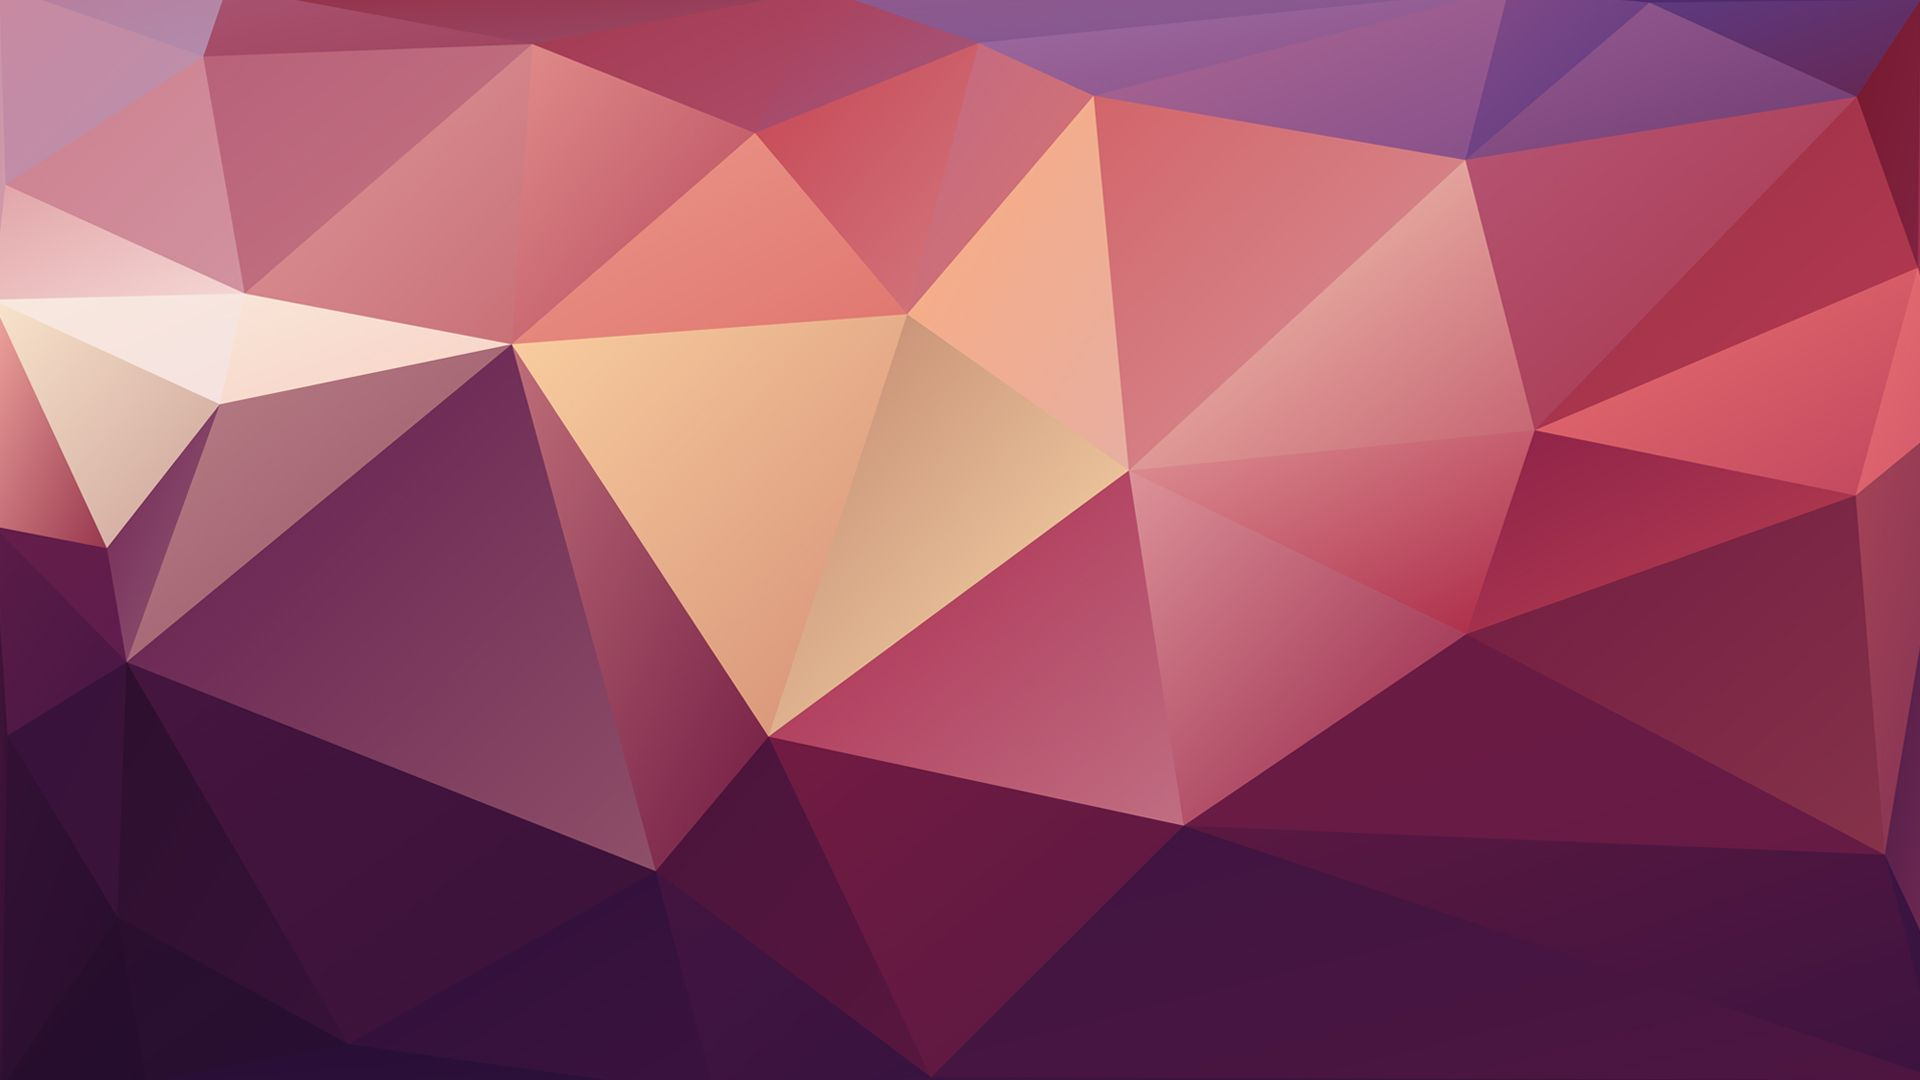 Abstract Art Geometric Wallpapers Top Free Abstract Art